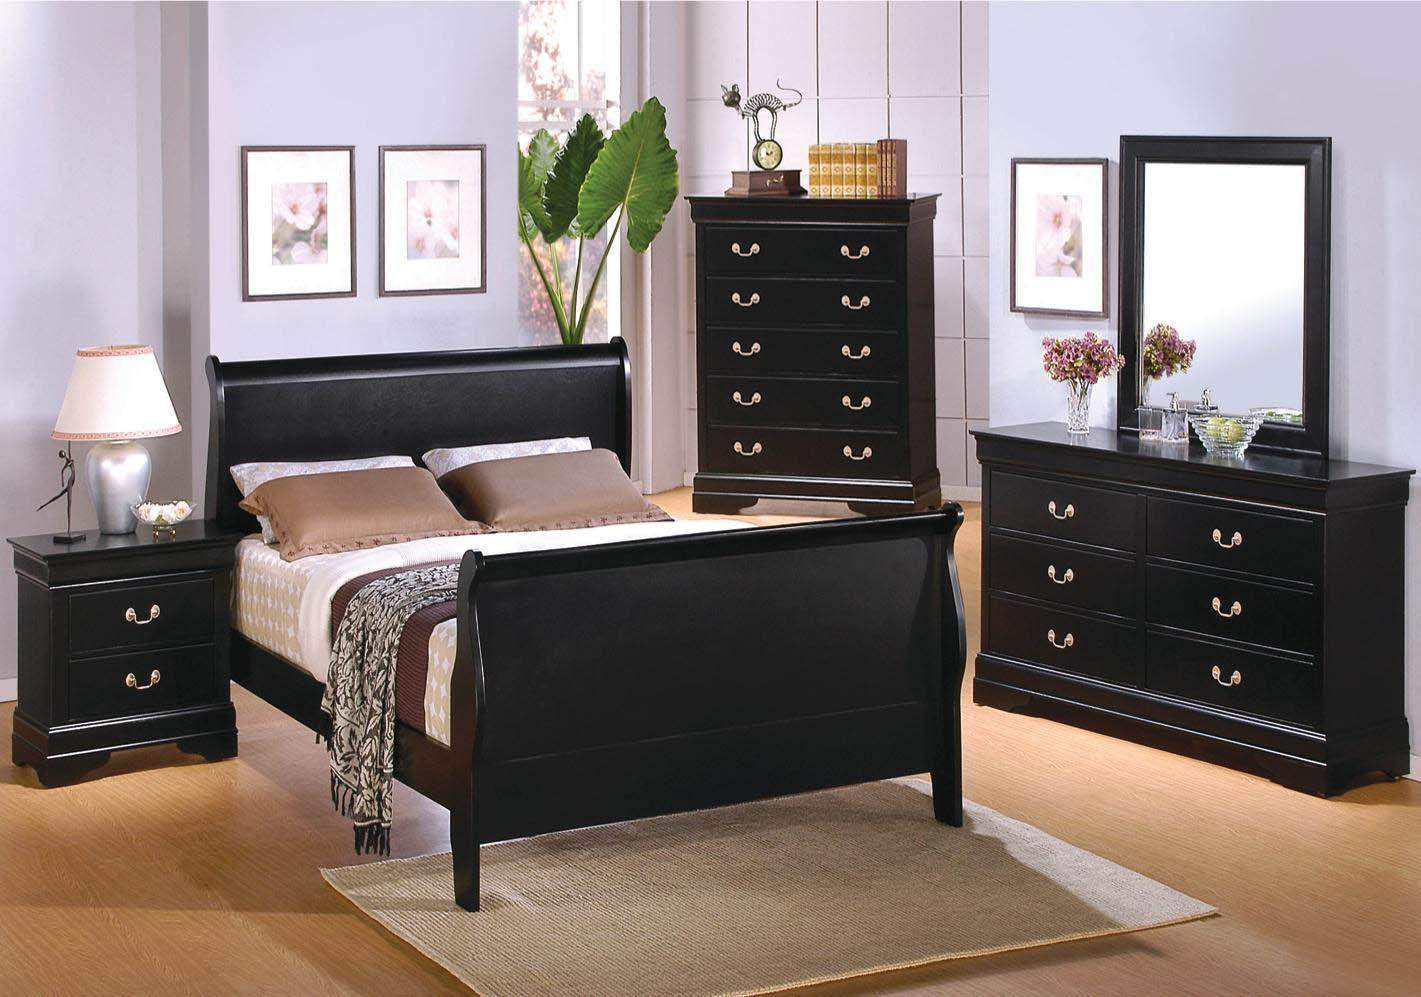 Louis Philippe 4 Piece Bed Set Deep Black Quality Furniture At Affordable Prices In